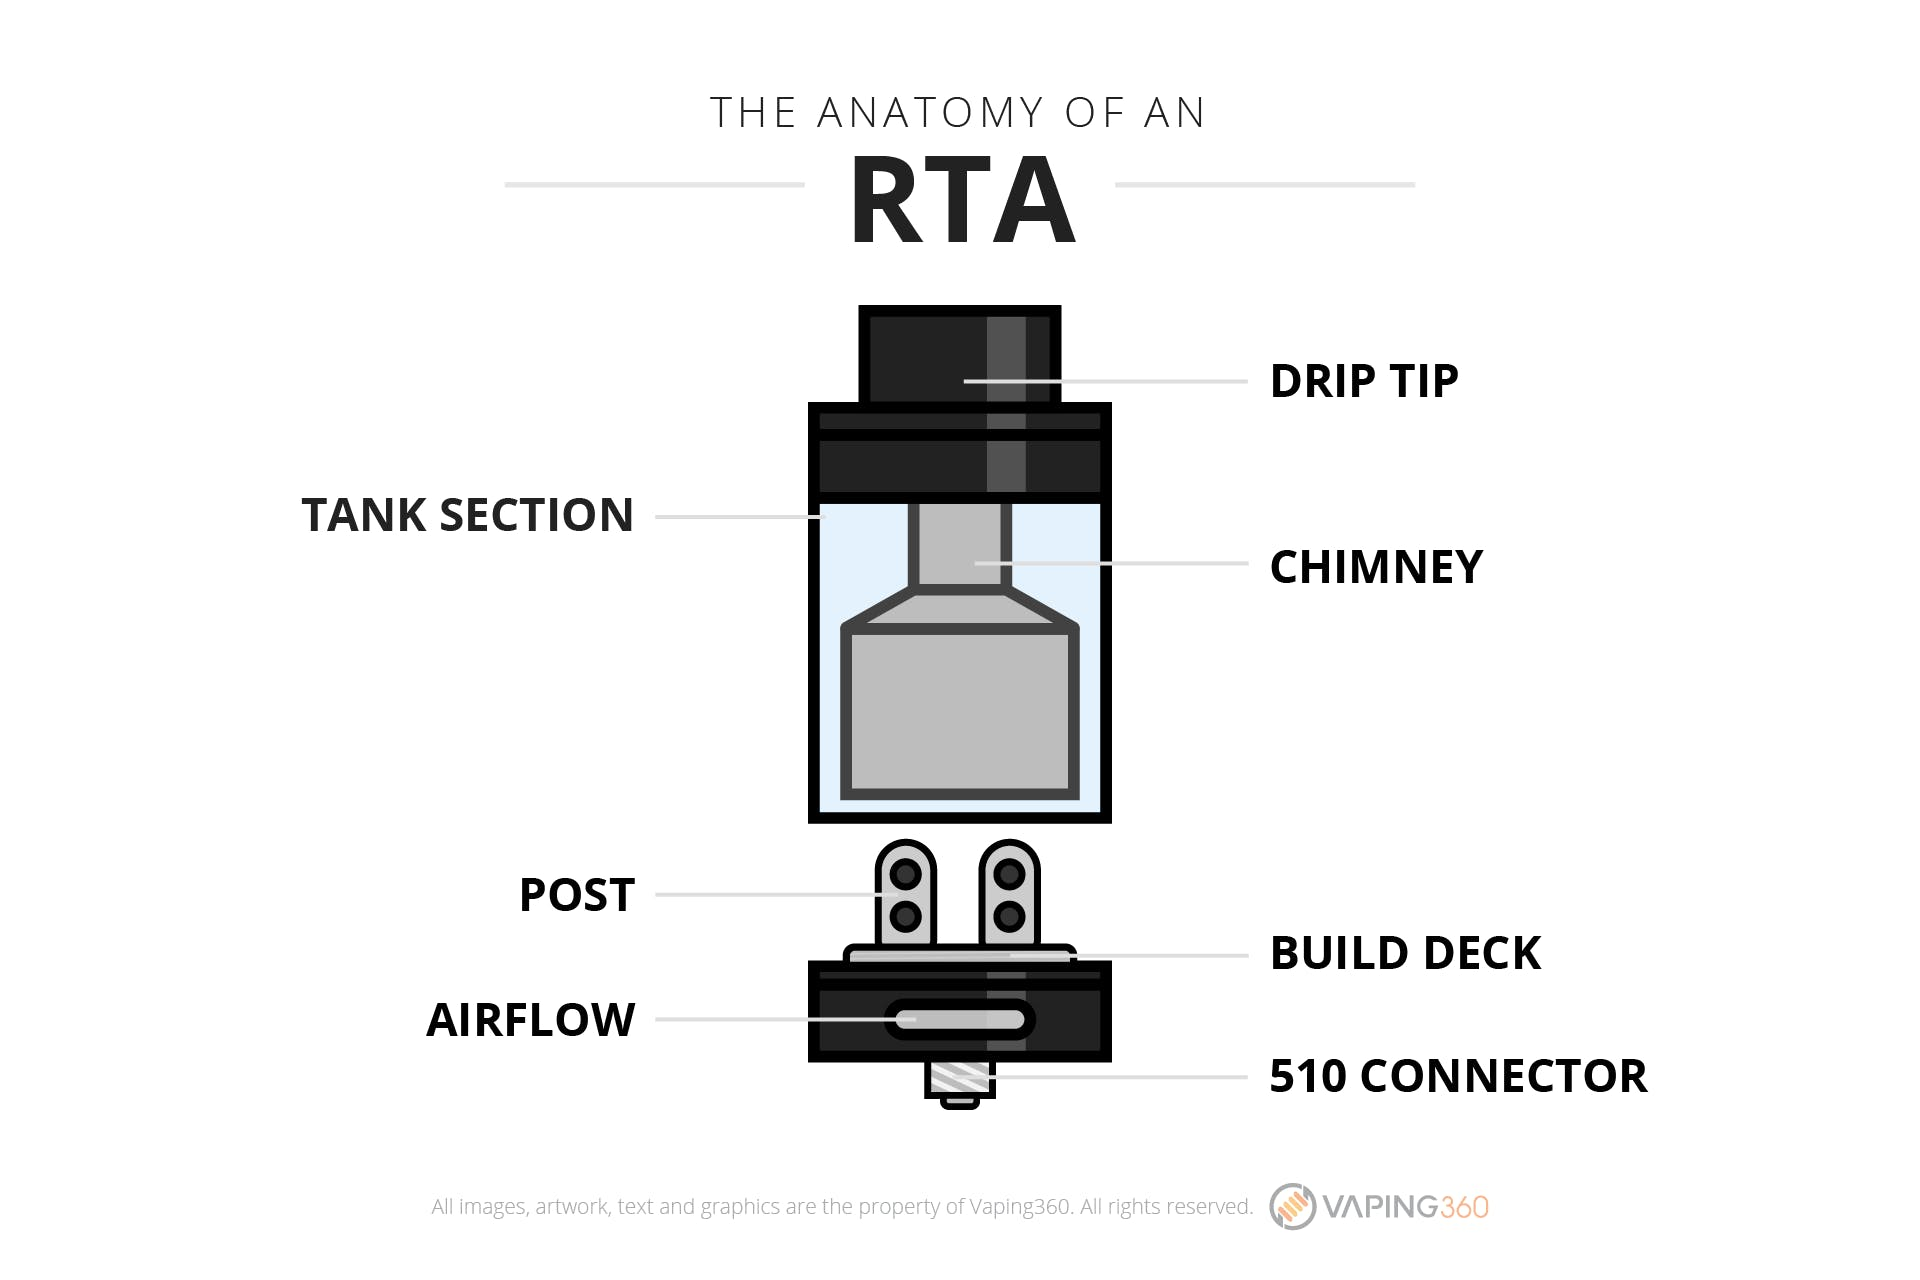 The anatomy of an RTA